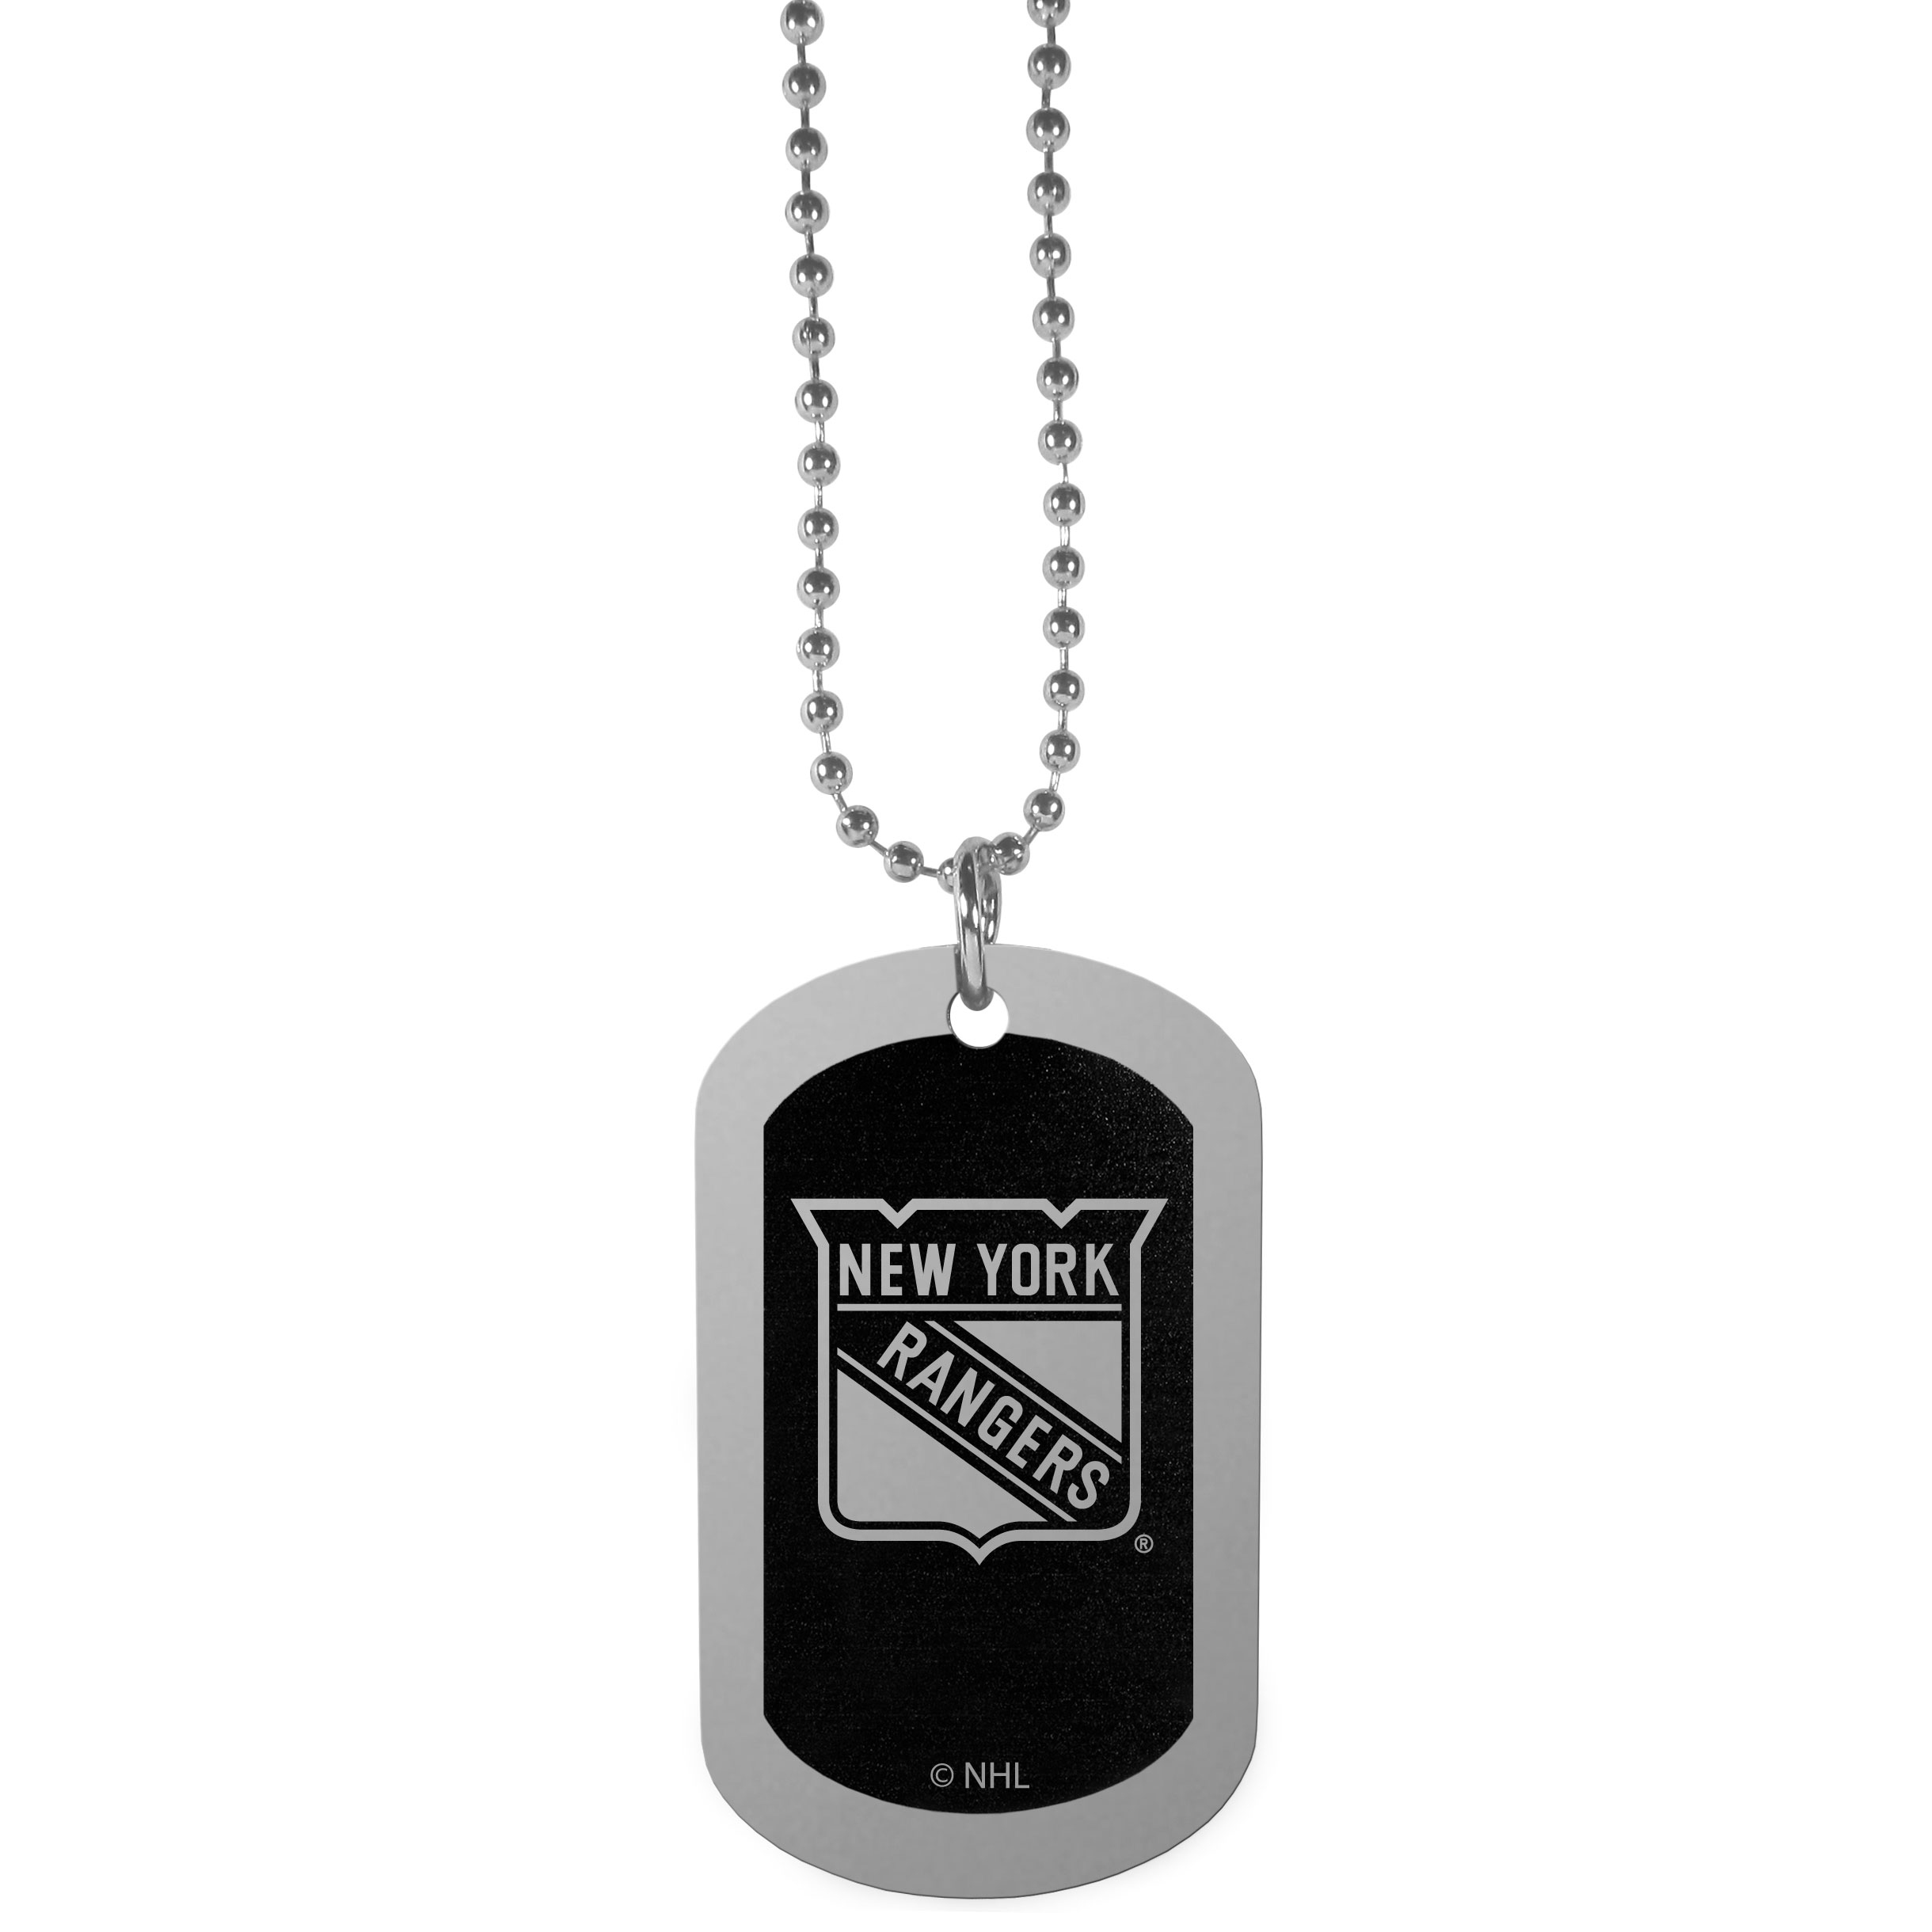 New York Rangers® Chrome Tag Necklace - Dog tag necklaces are a fashion statement that is here to stay. The sporty version of the classic tag features a black printed over a high polish tag to create a bold and sporty look. The tag comes on a 26 inch ball chain with a ball and joint clasp. Any New York Rangers® would be proud to wear this attractive fashion accessory.